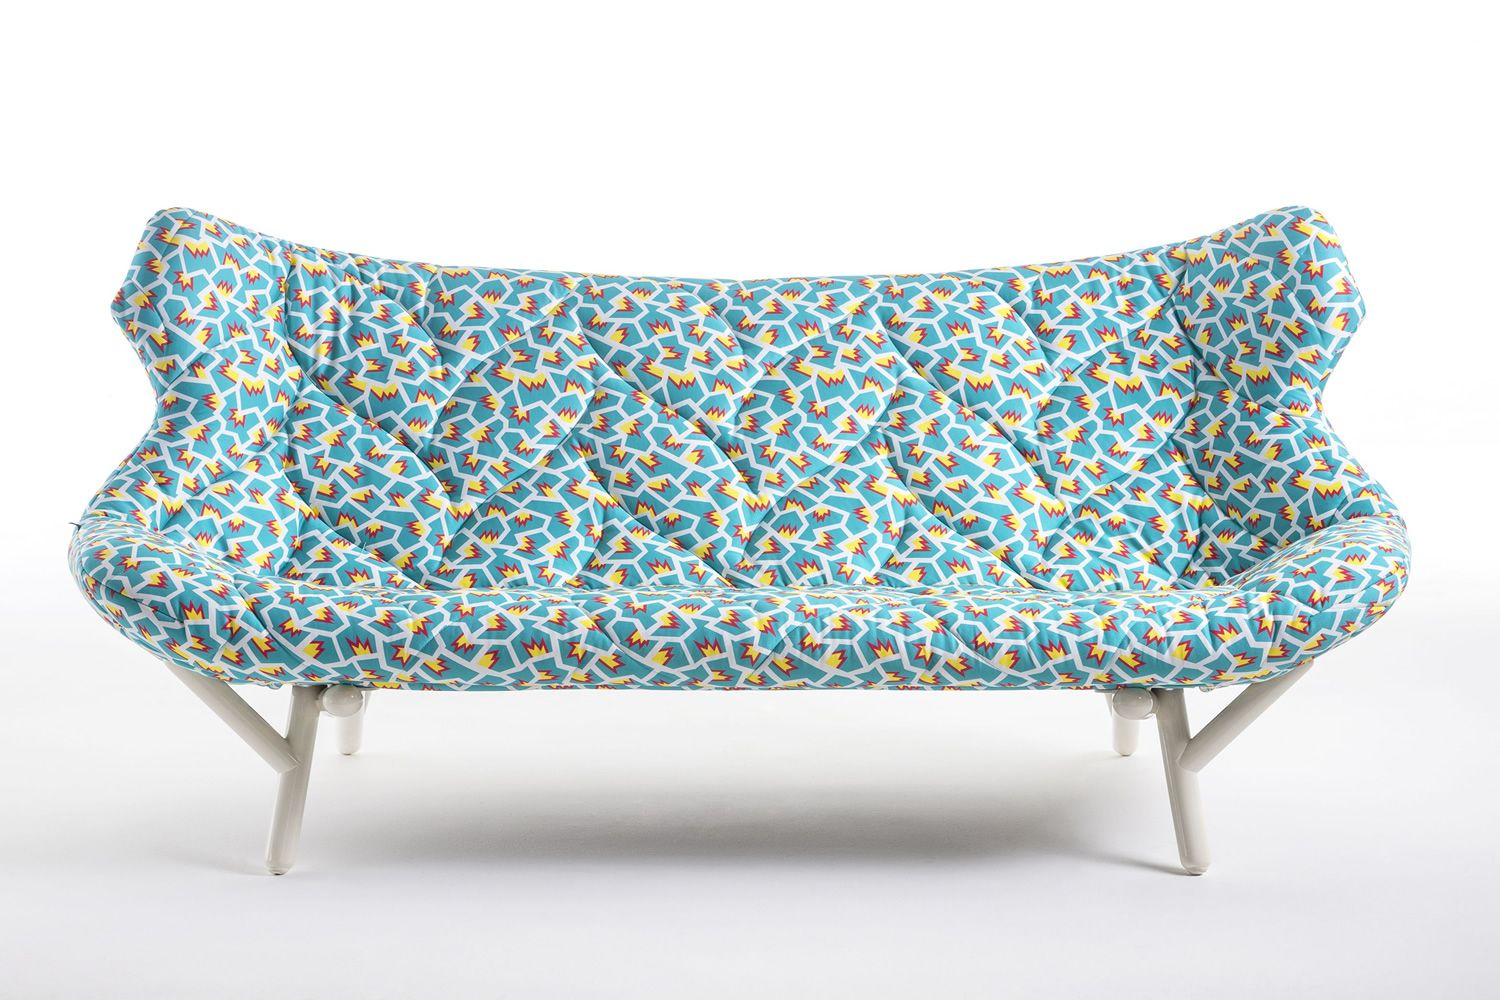 Foliage Sofa by Sottsass: Design sofa Kartell goes Sottsass series ... for Ettore Sottsass Sofa  565ane